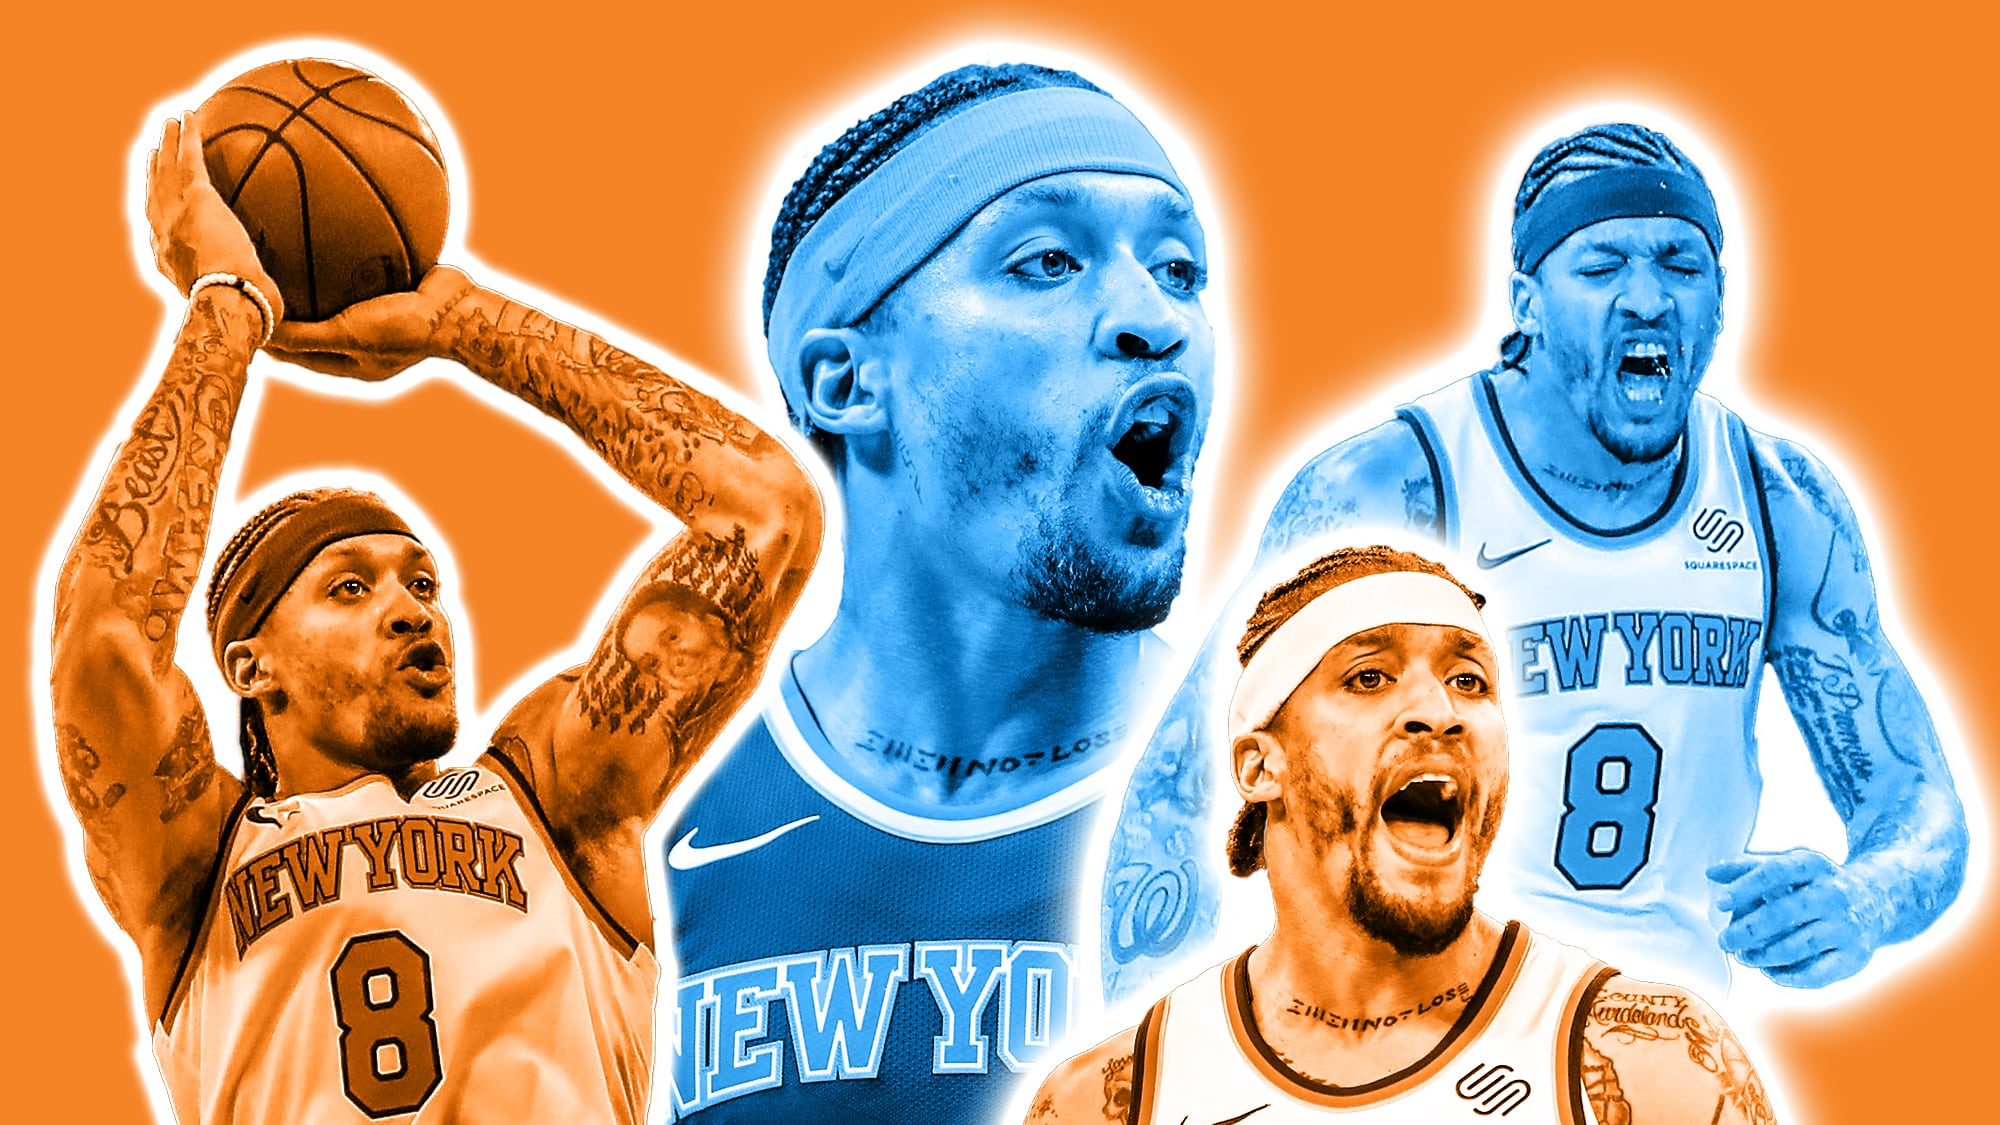 New York Knicks  Top 5 Michael Beasley moments on and off the court 83a61d47f